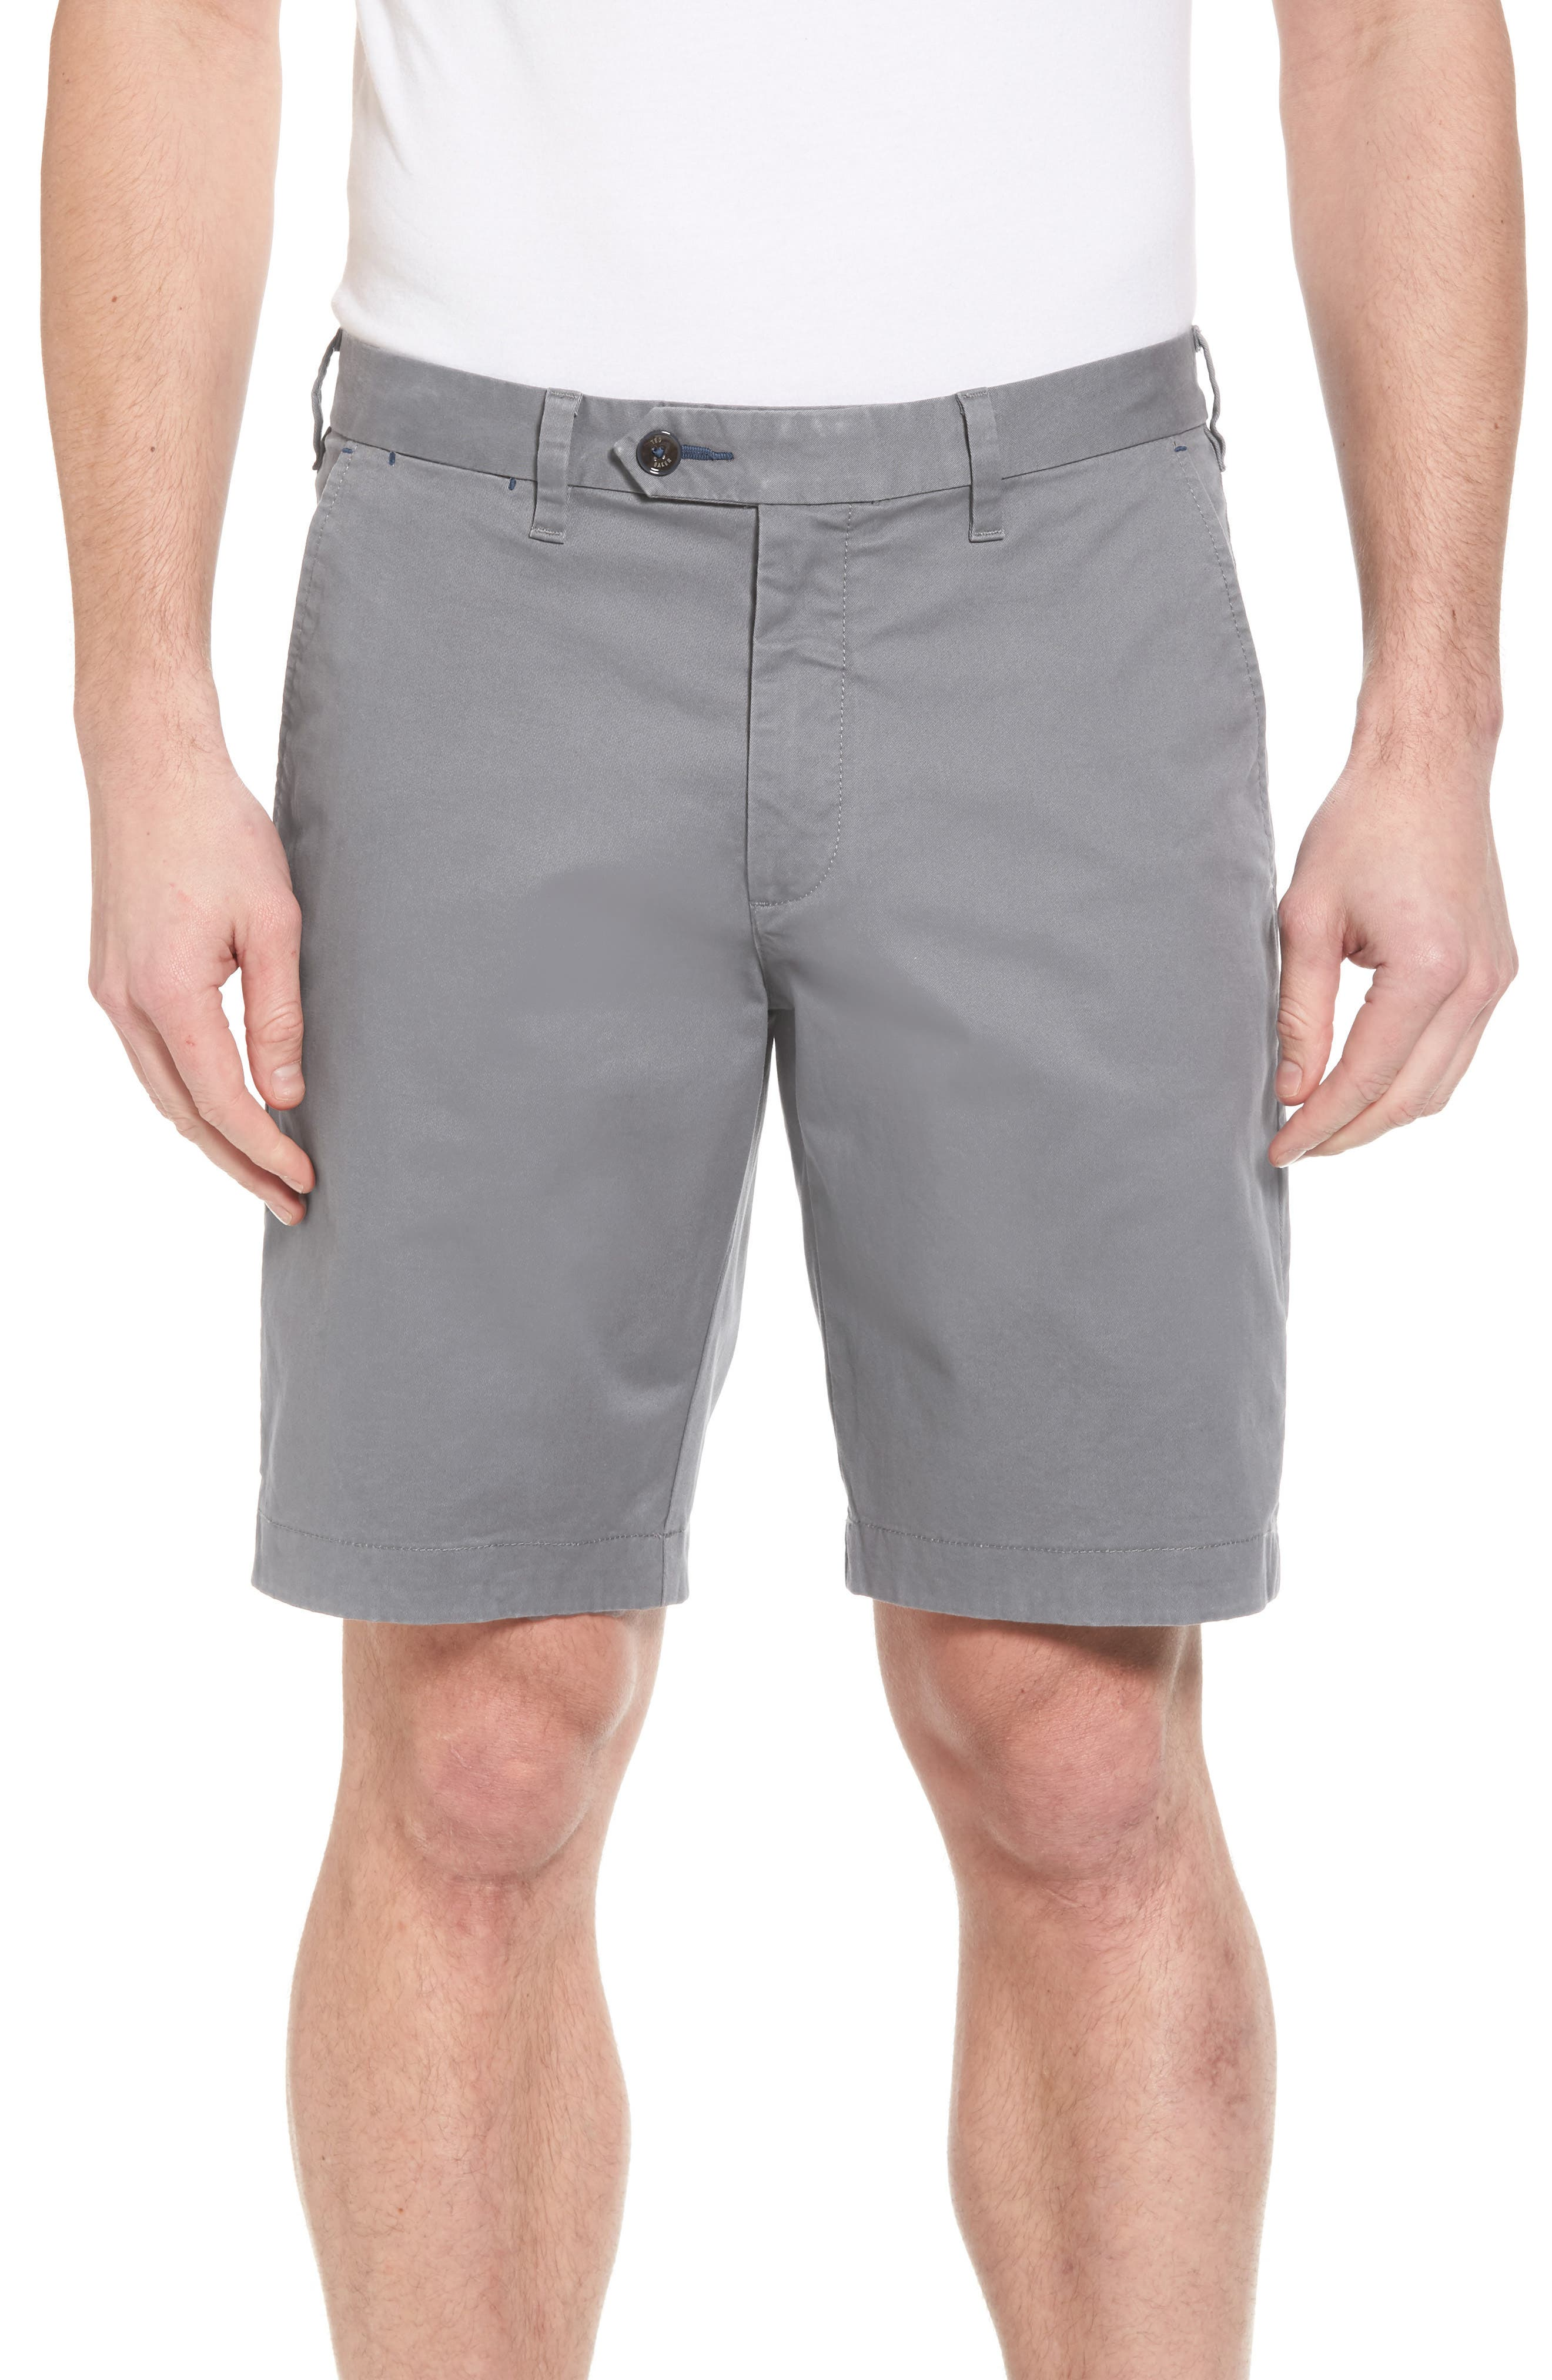 Proshor Slim Fit Chino Shorts,                         Main,                         color, 050